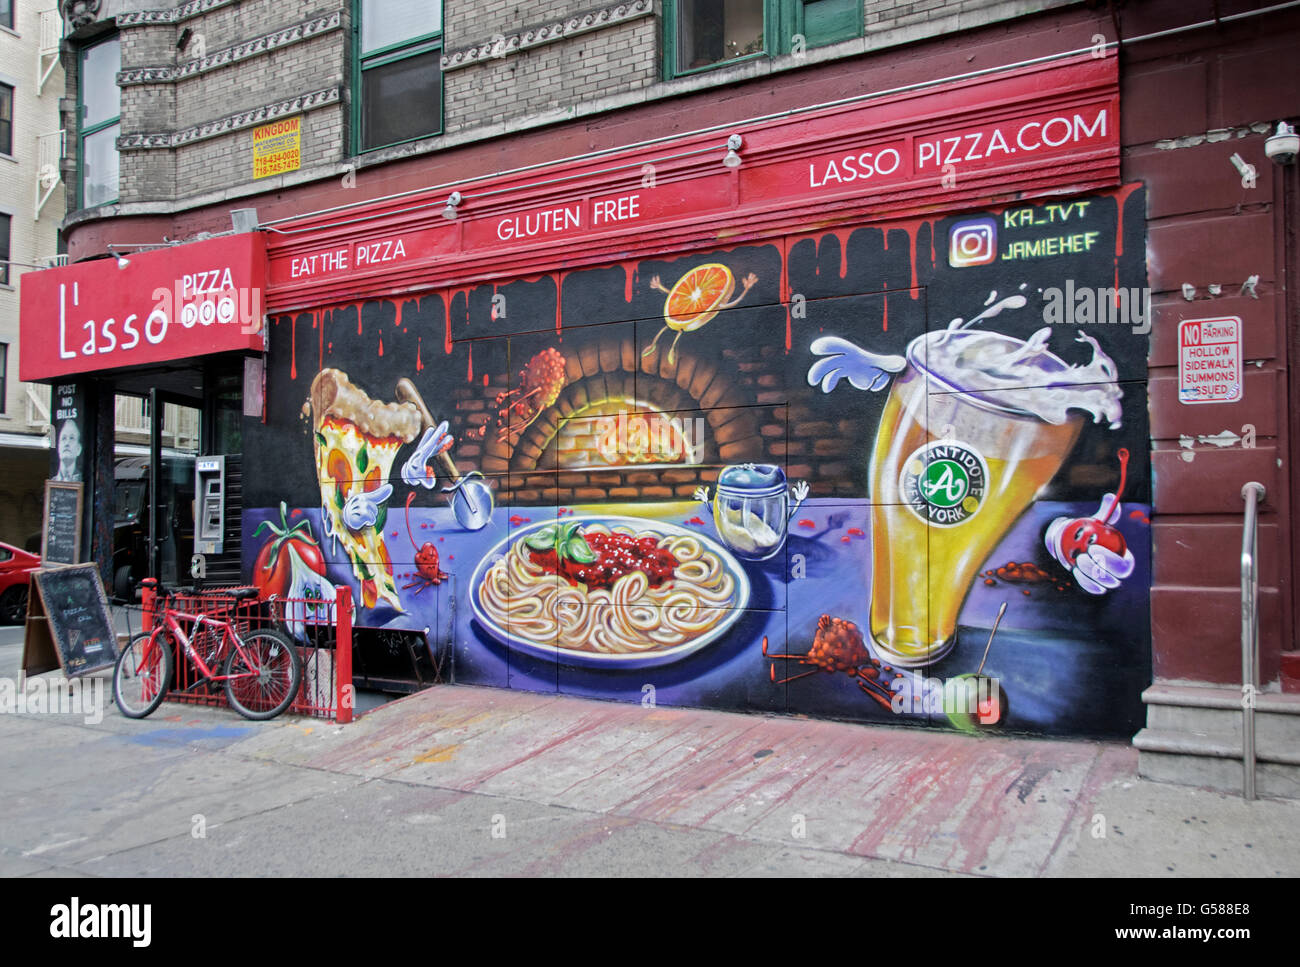 Graffiti Wall At The Side Of L Asso Italian Restaurant On